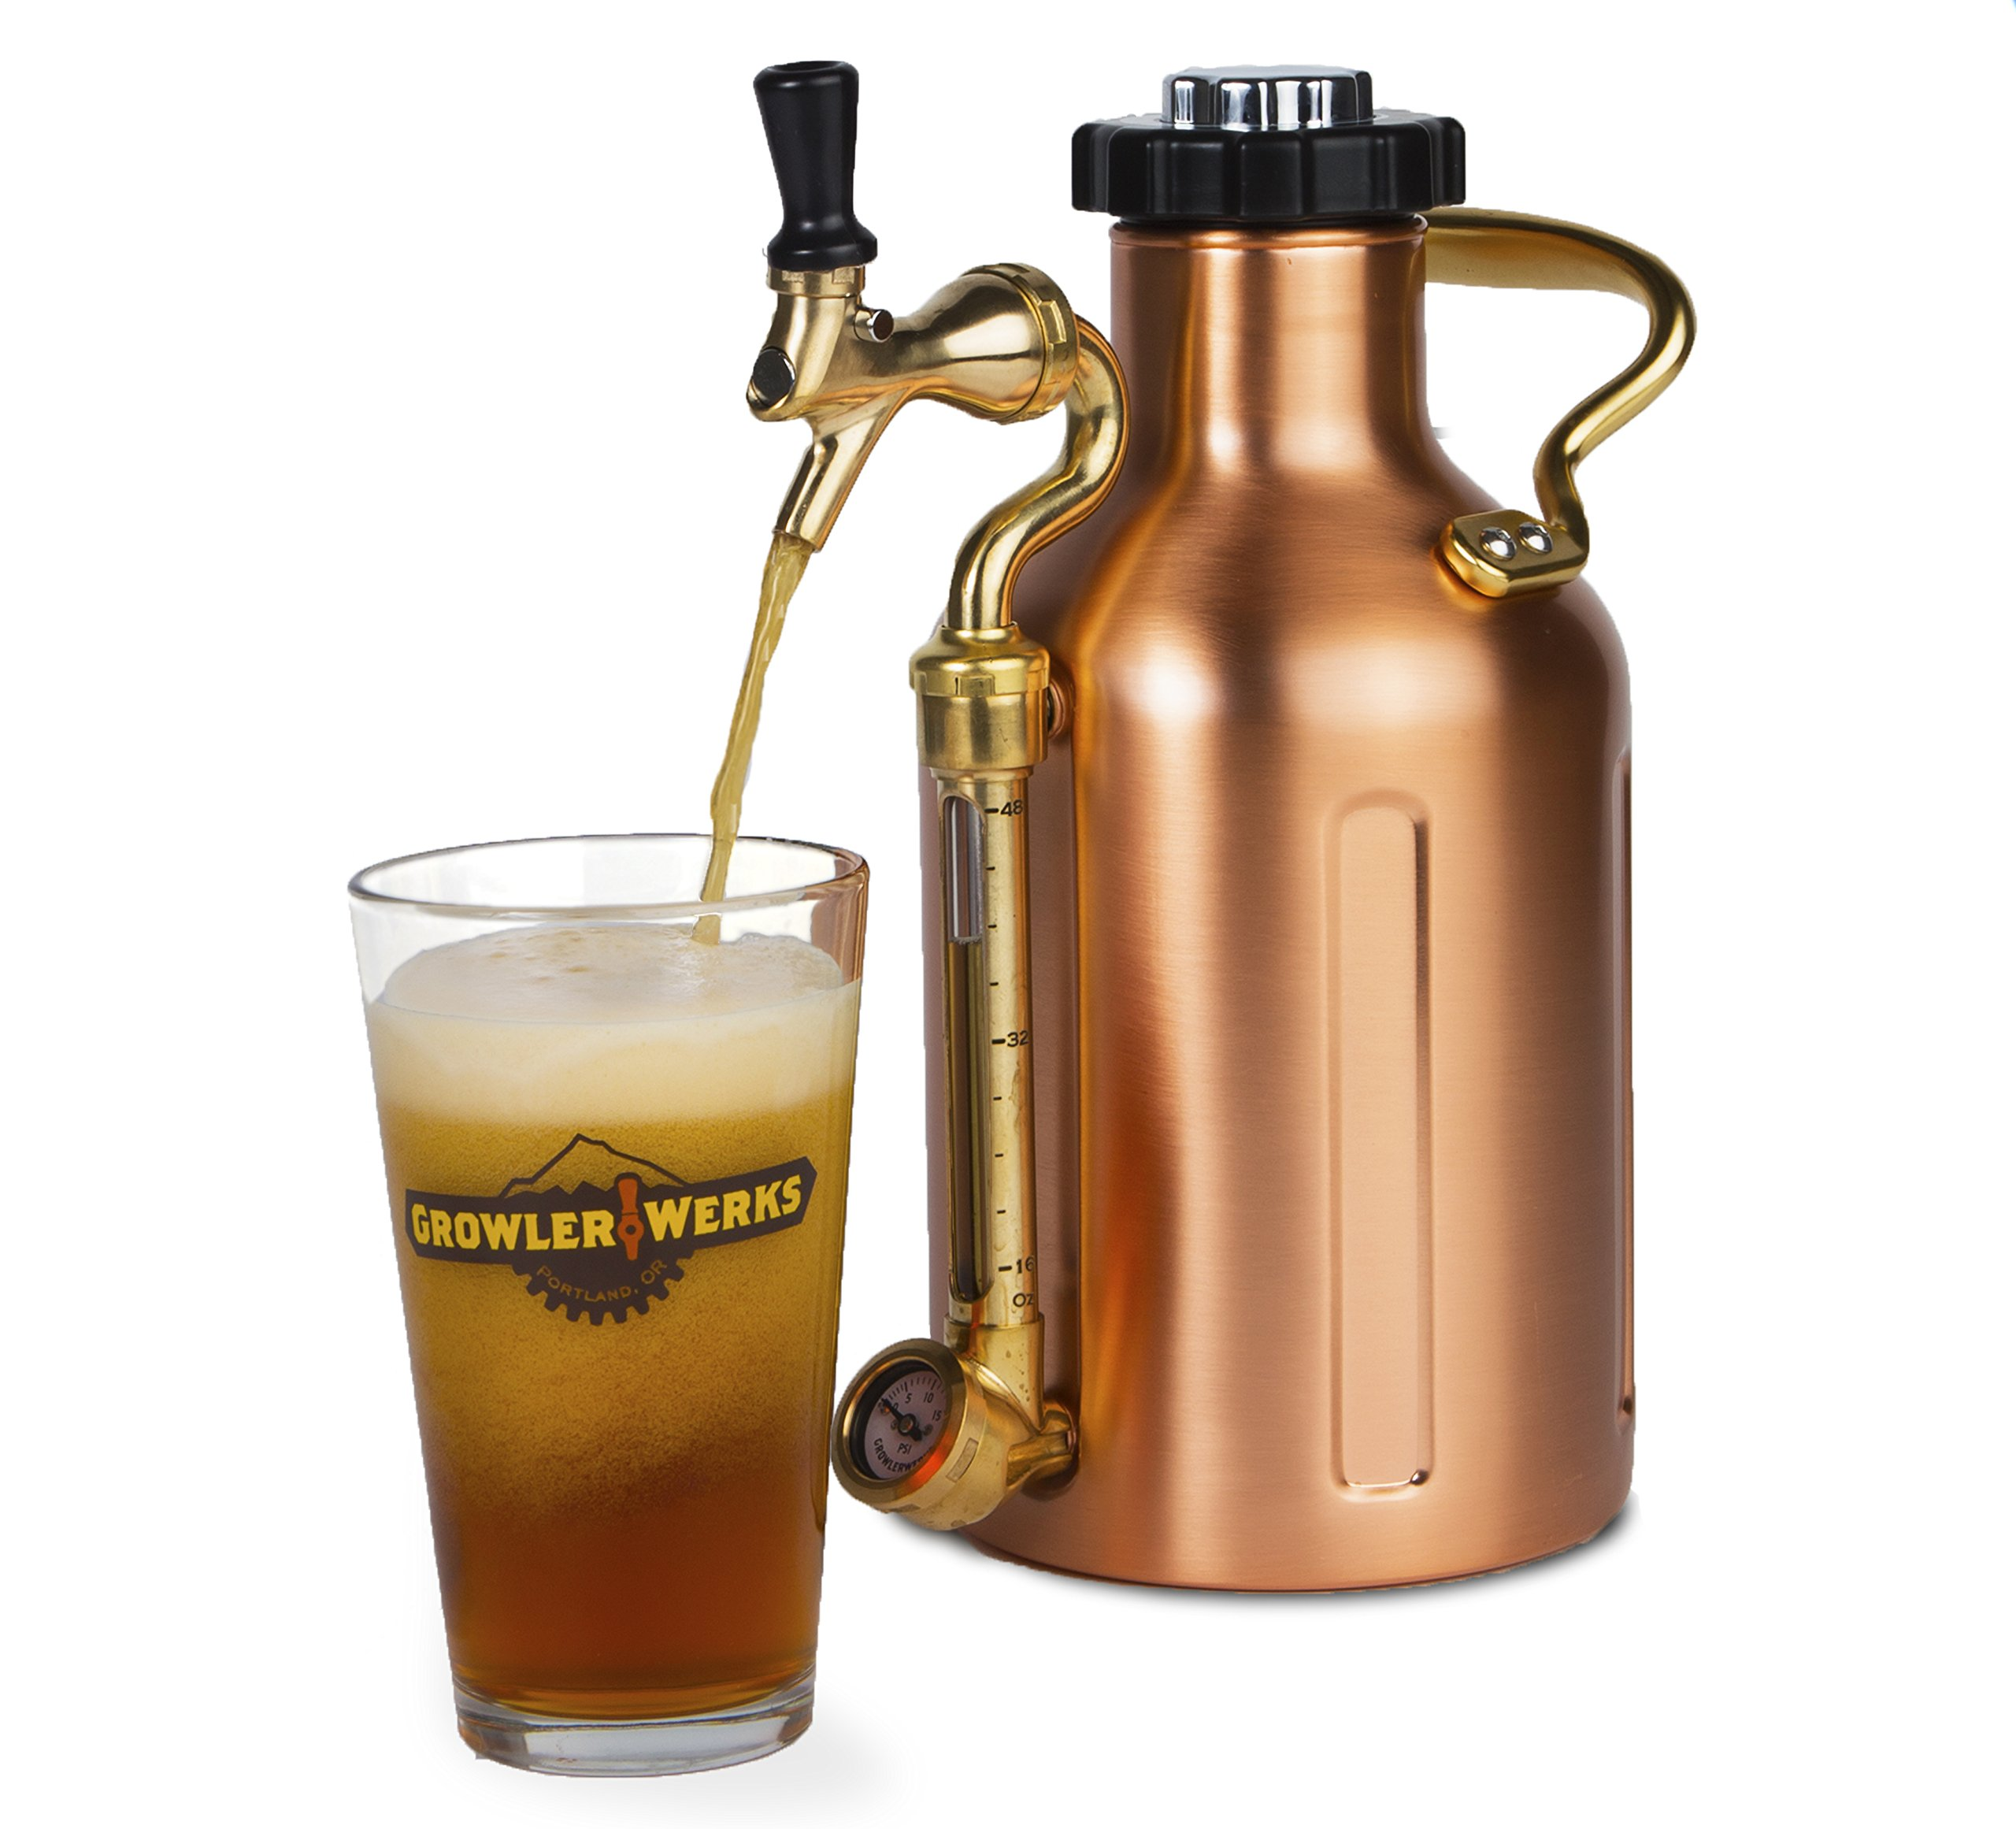 uKeg 64 Pressurized Growler for Craft Beer - Copper by GrowlerWerks (Image #4)